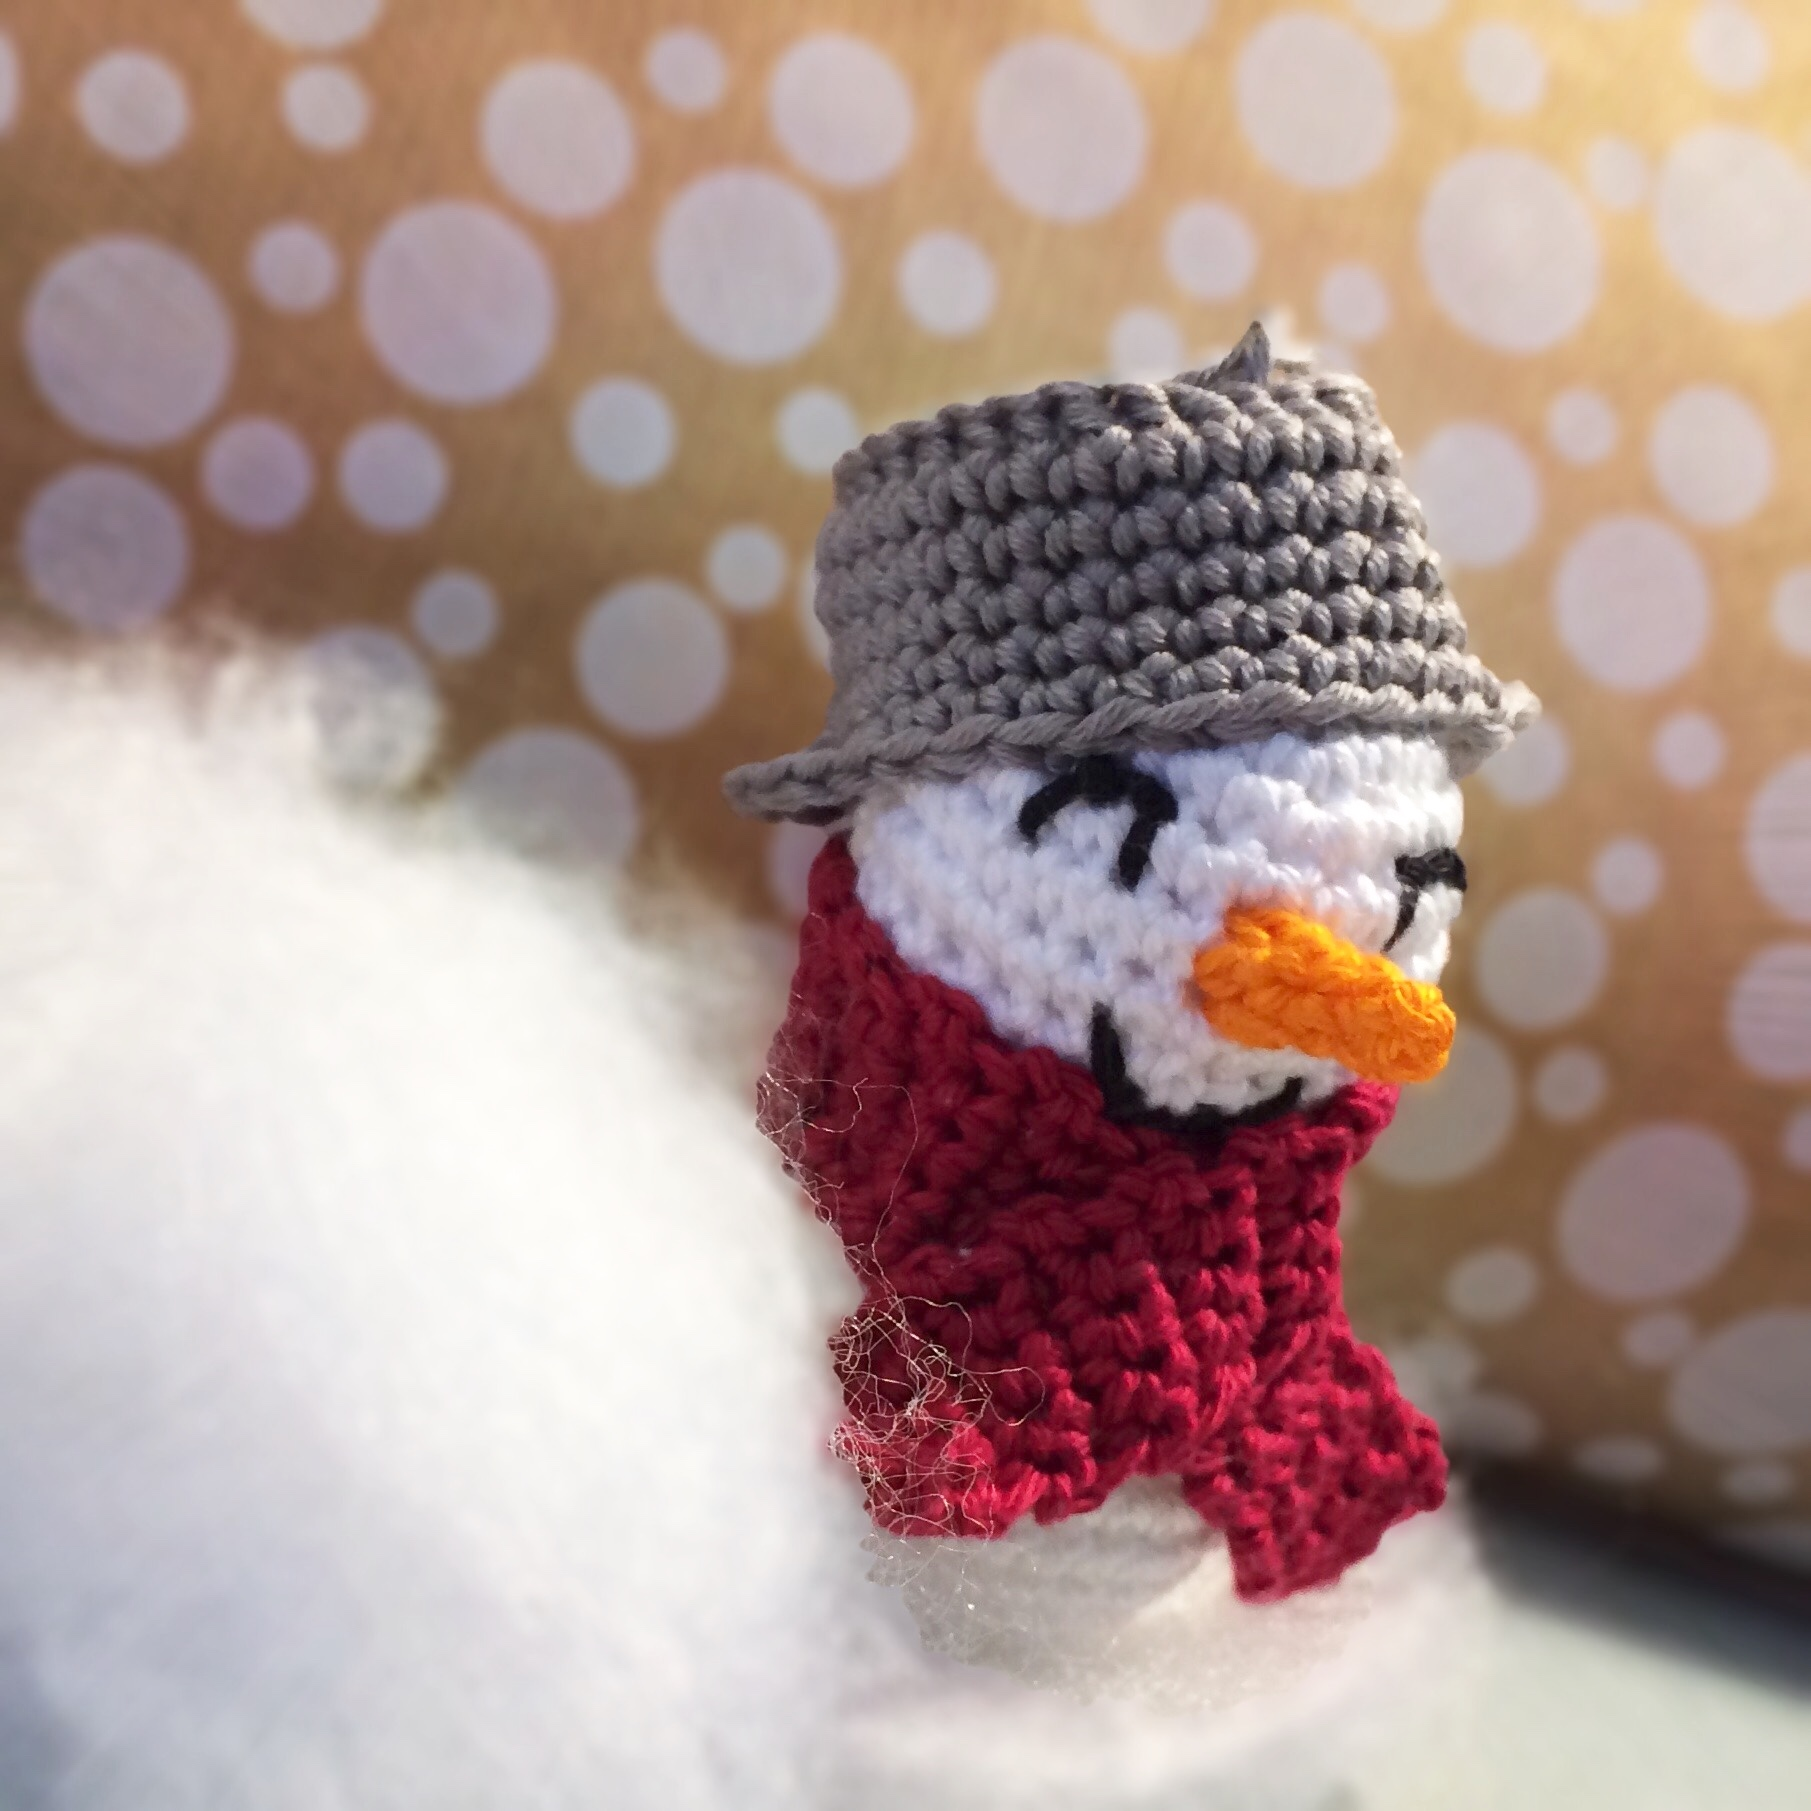 Cuddle Me Snowman amigurumi pattern - Amigurumi Today | 1811x1811